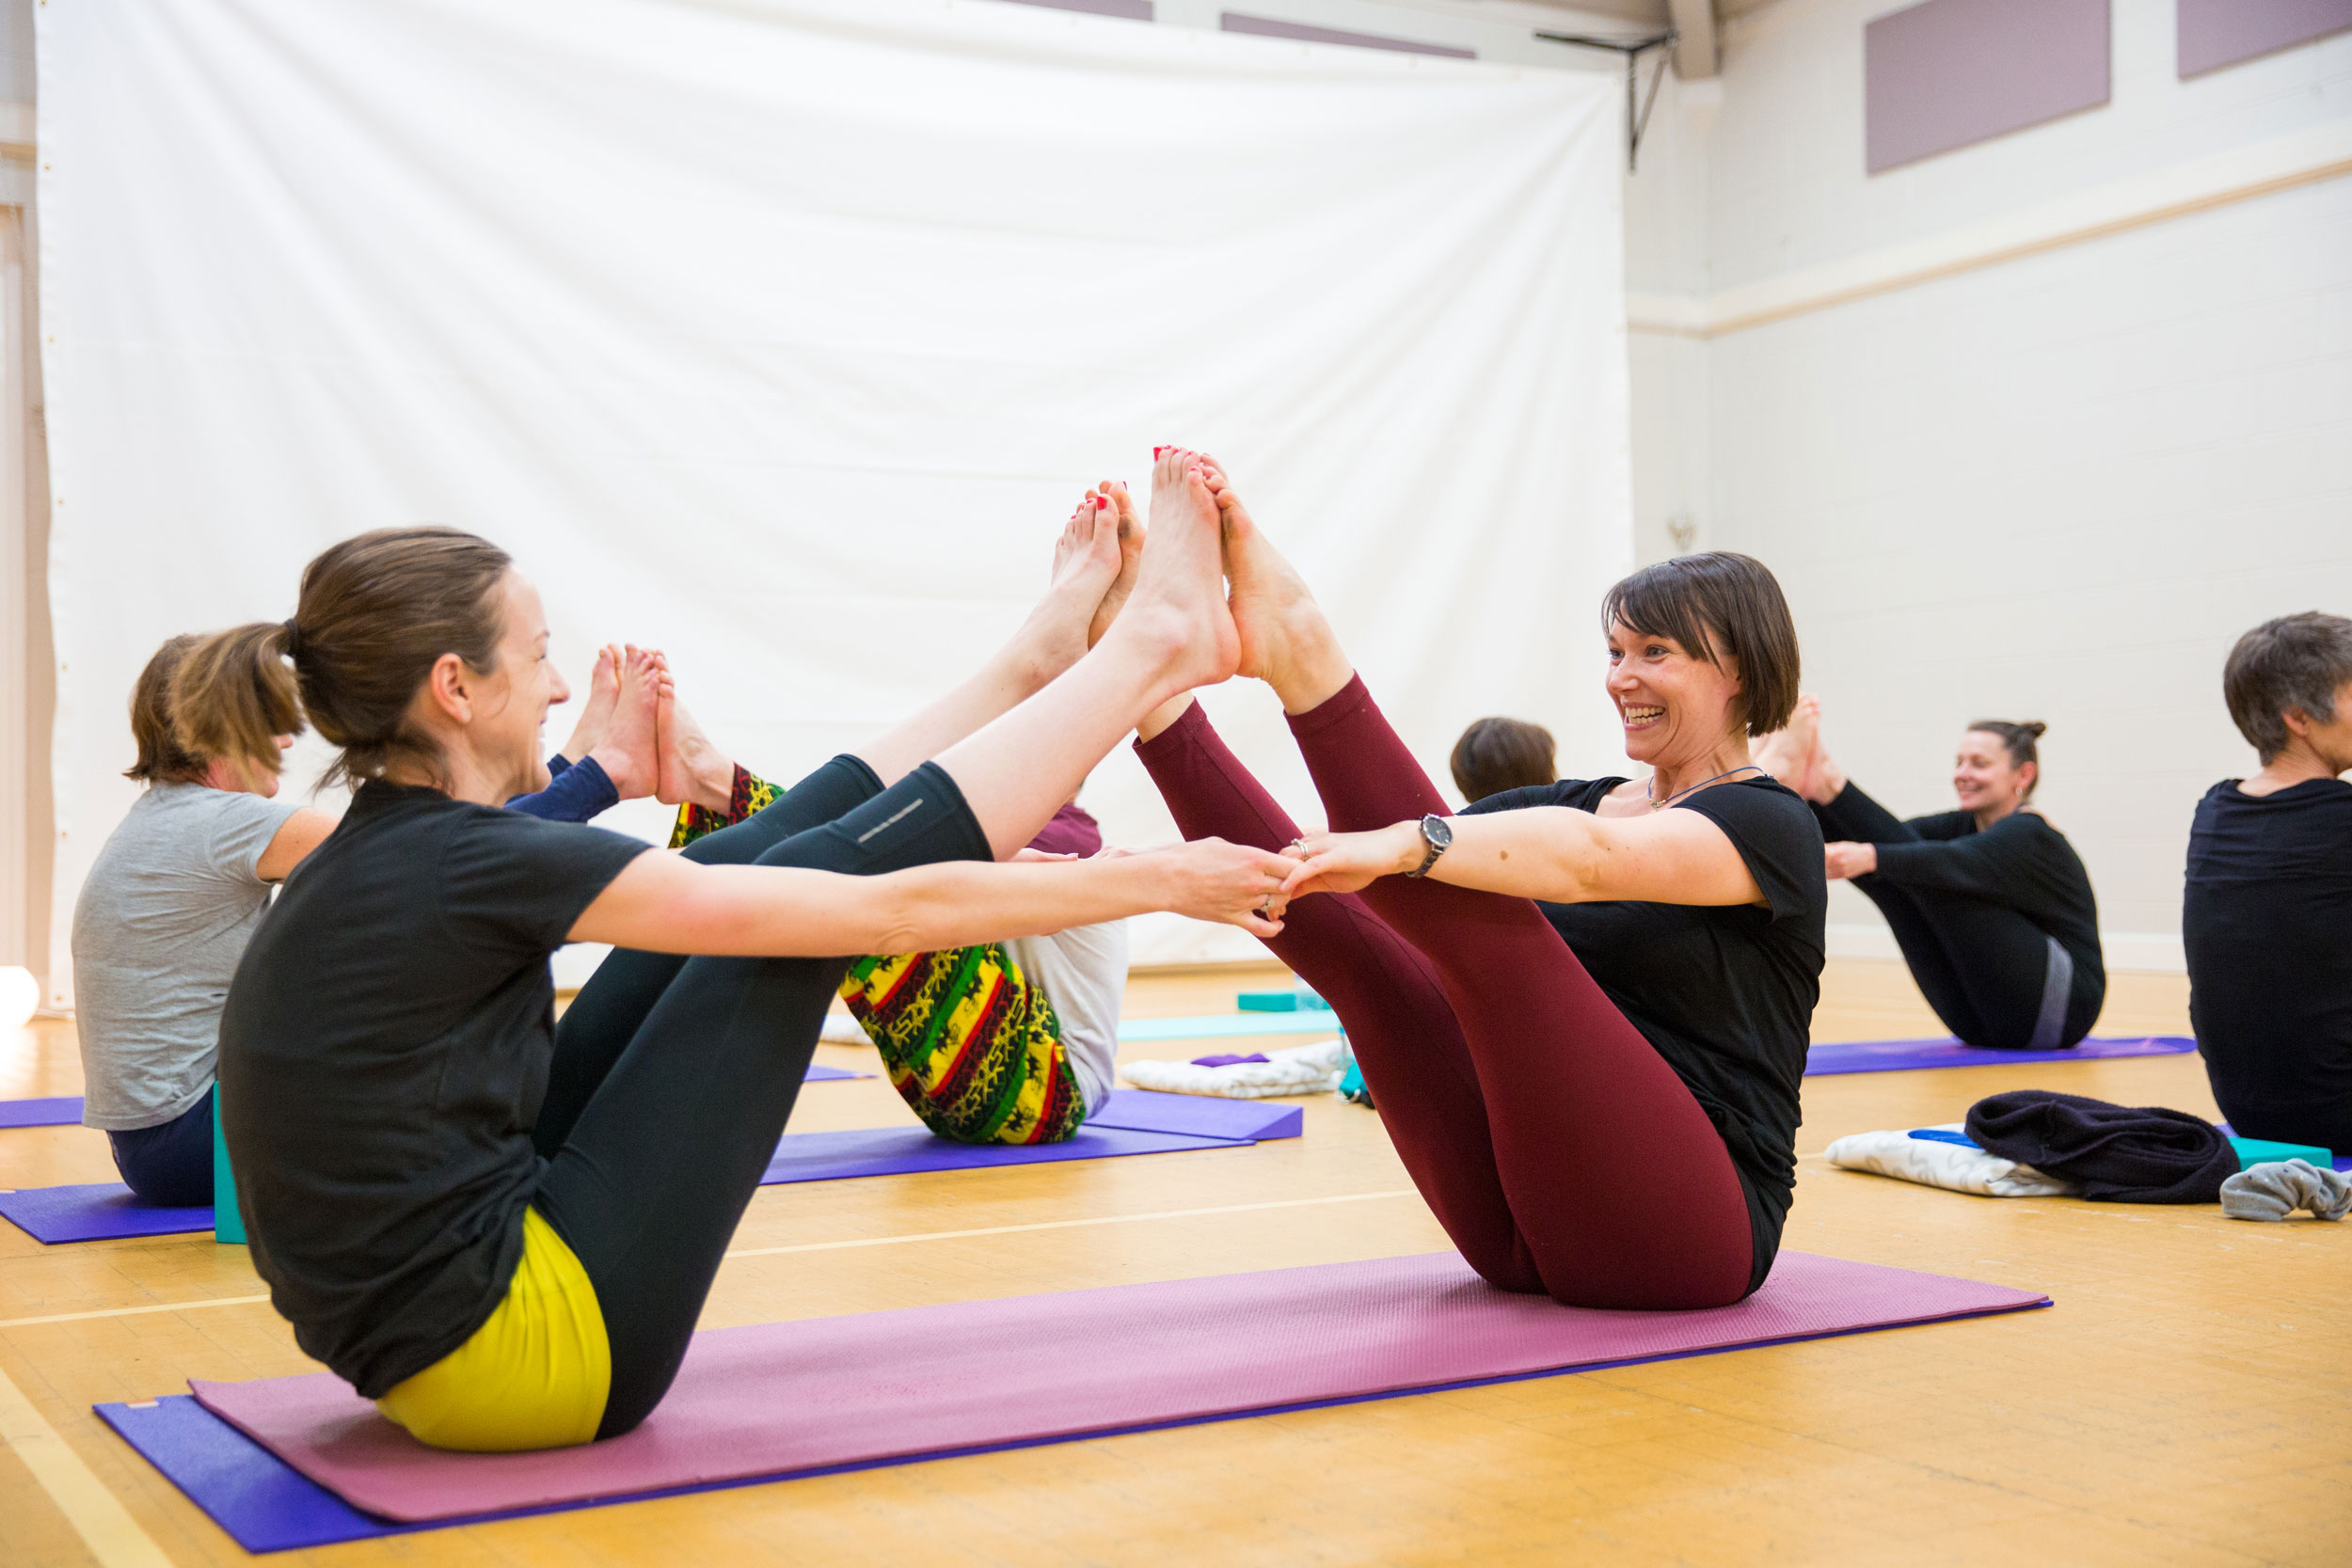 What We Do - Based in York, One Mindful Yoga offers a variety of yoga practices from Vinyasa Flow classes to Yoga therapy sessions and a unique 8 week course for stress, anxiety and depression.